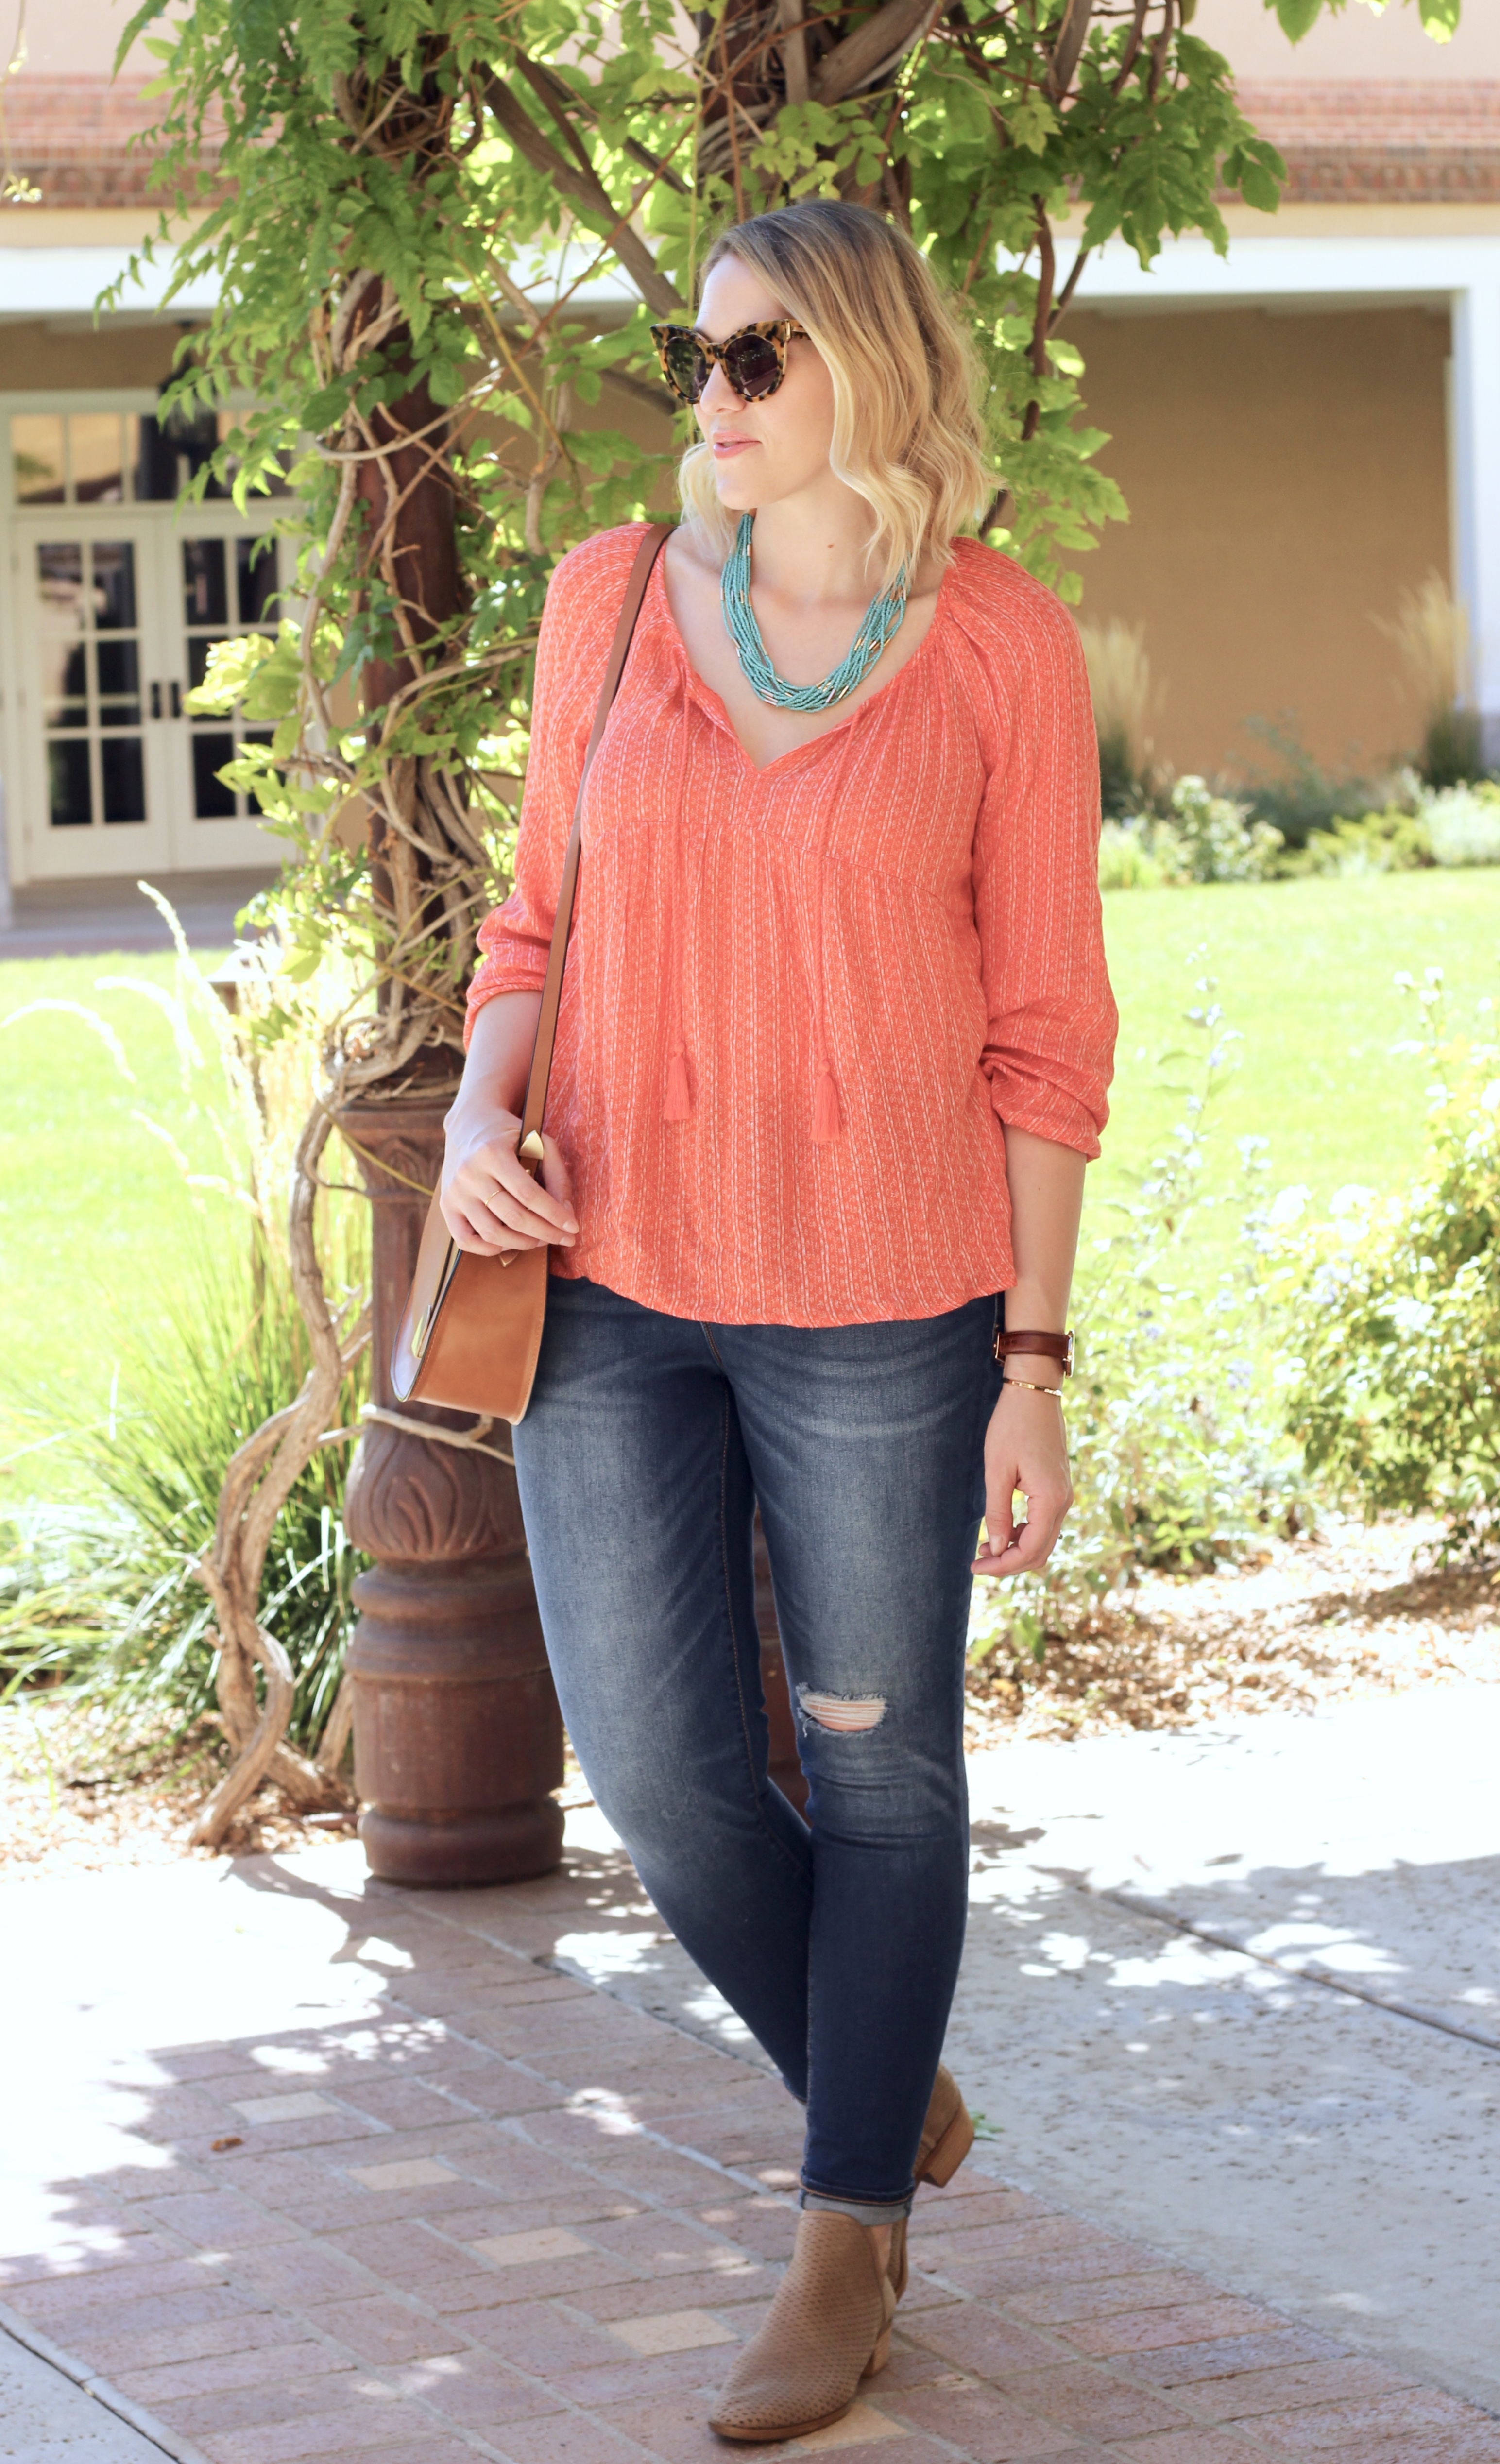 50 styles 50 states old navy new mexico  #newmexico #oldnavy